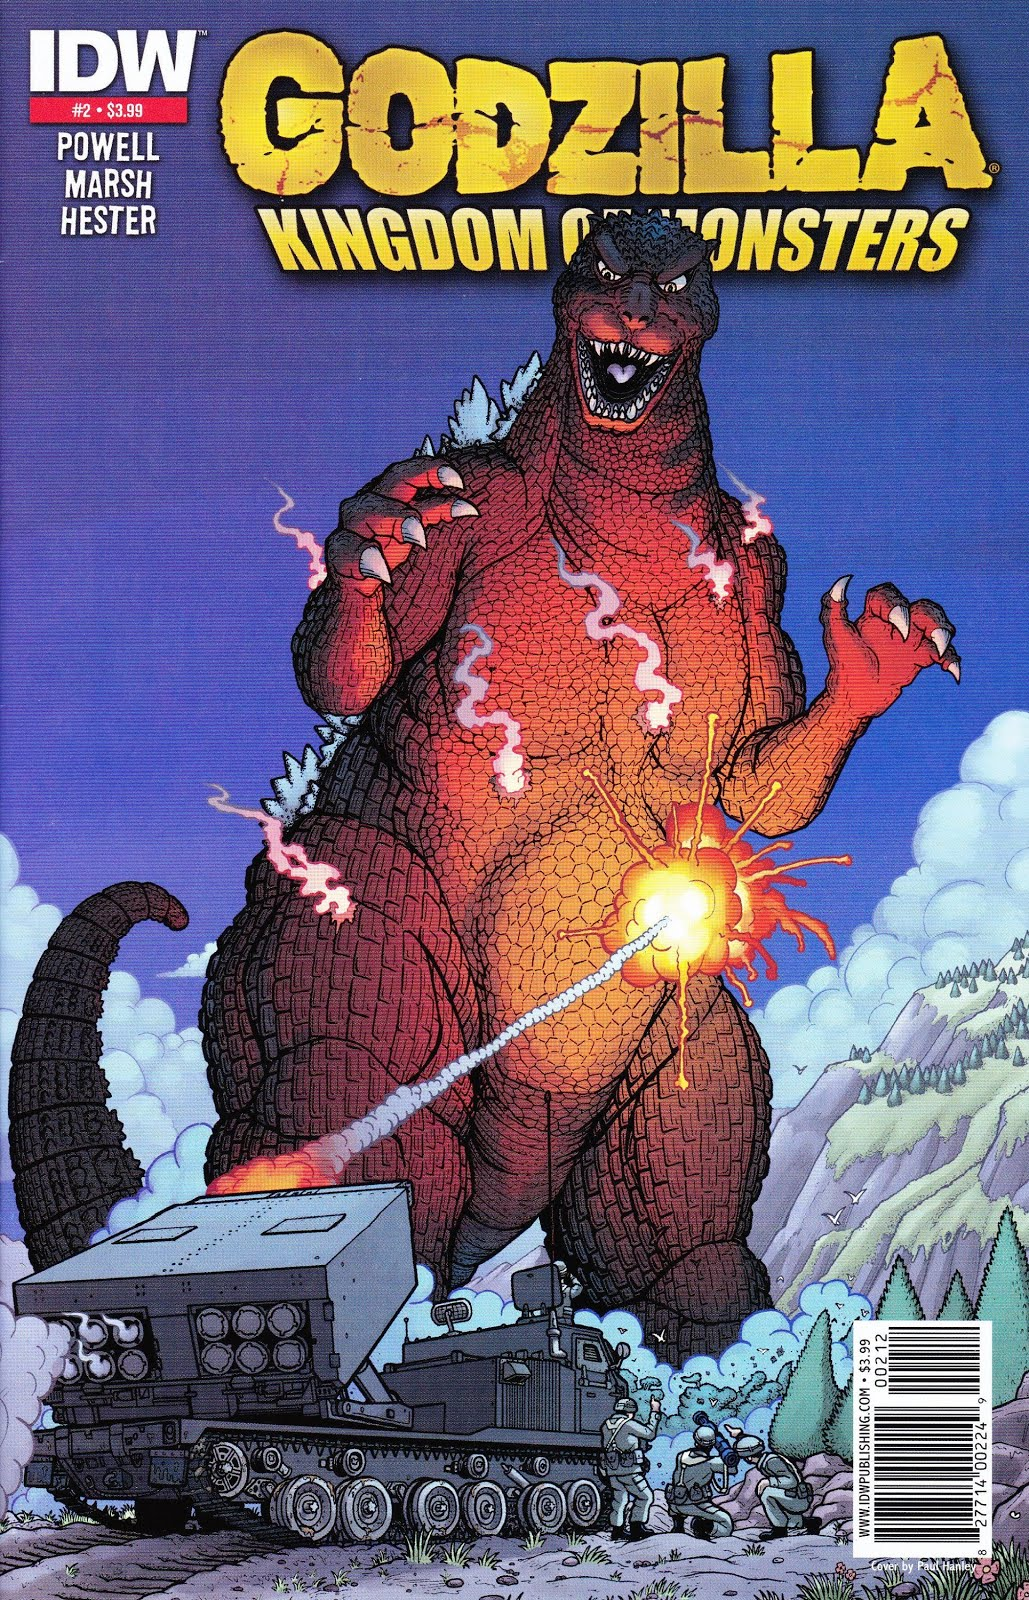 Godzilla Kingdom Of Monsters #2 Variant Cover E May 2011 IDW Publications Grade NM